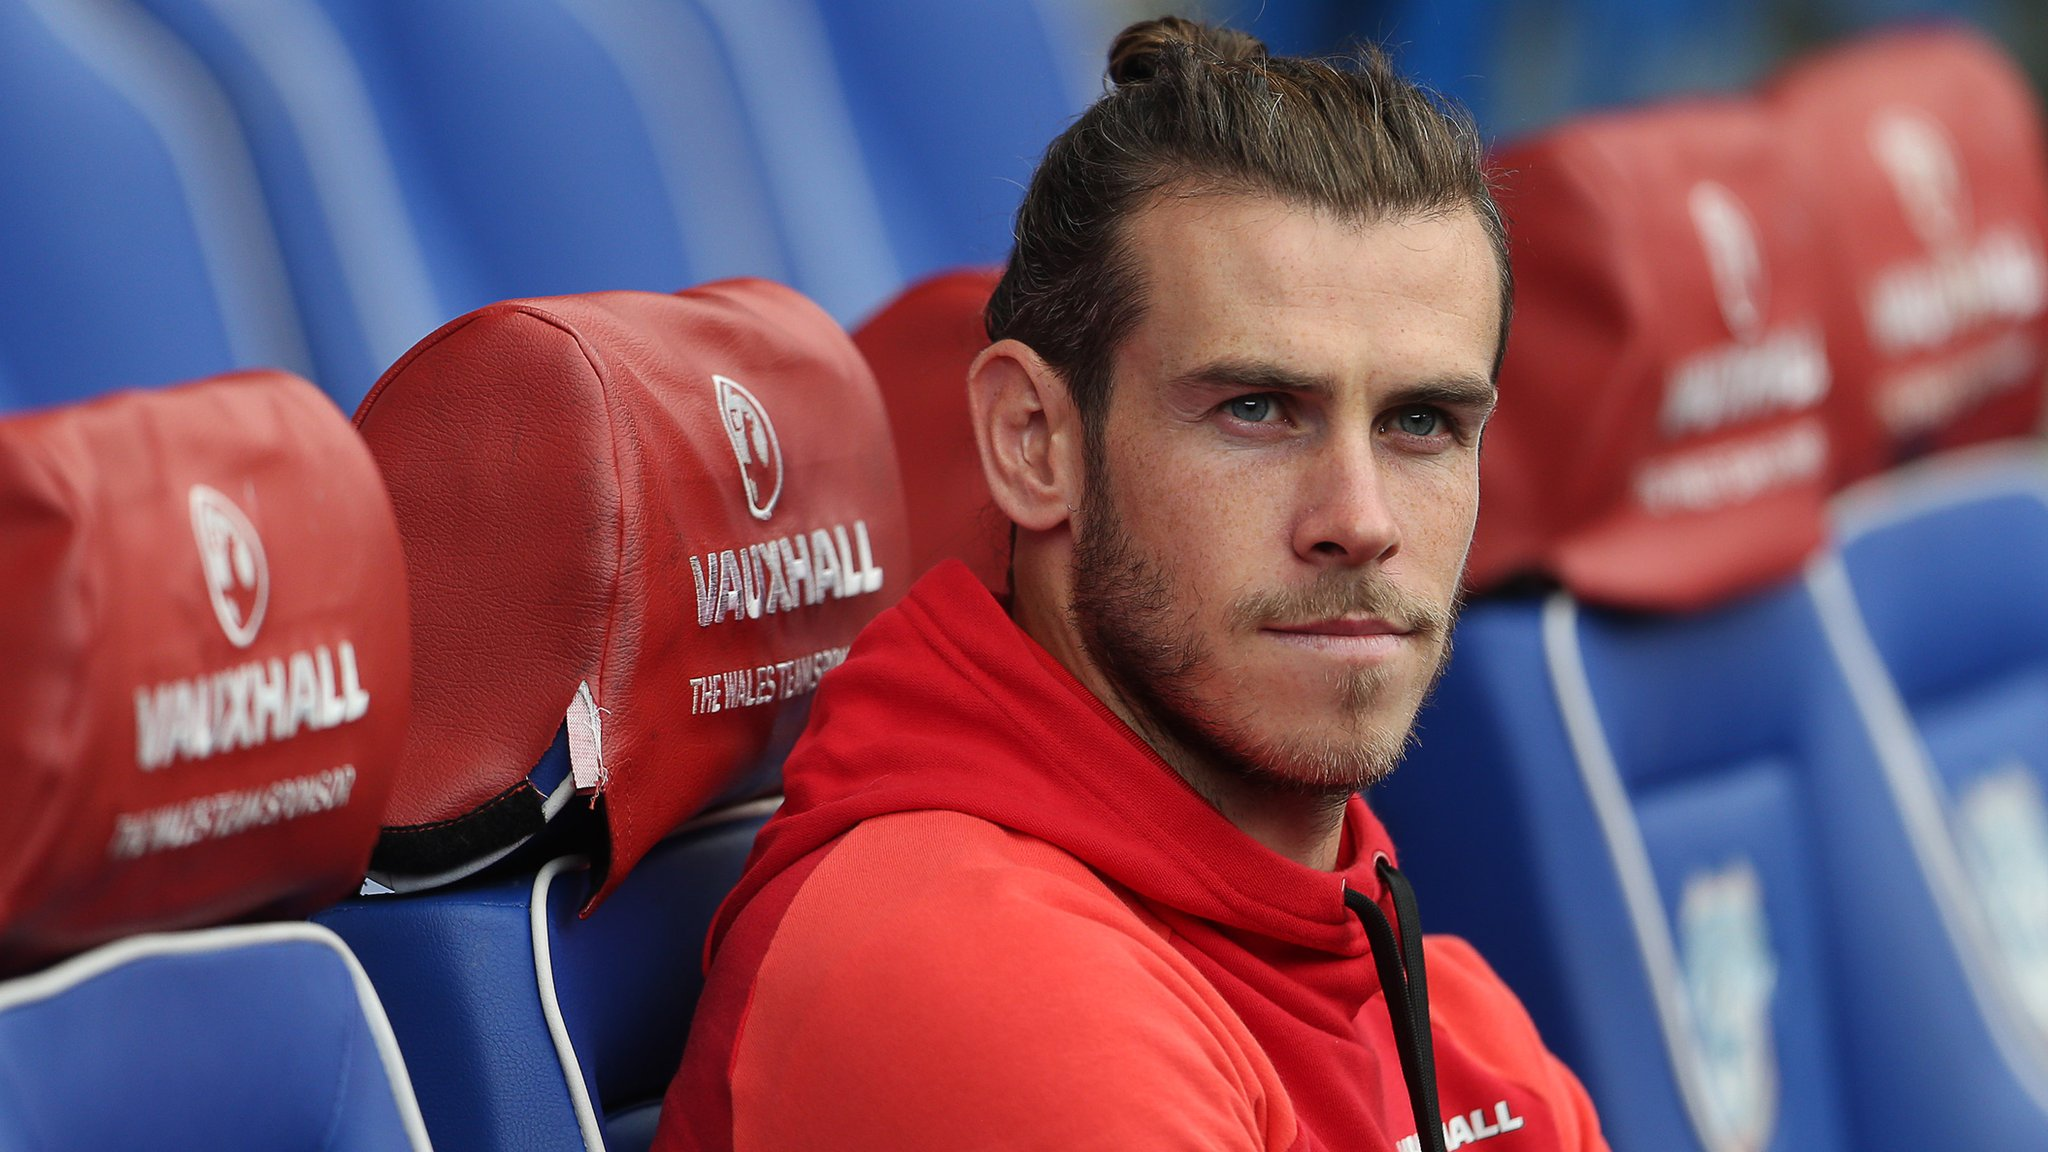 Bale has mindset to 'make a difference' in Champions League final - Giggs